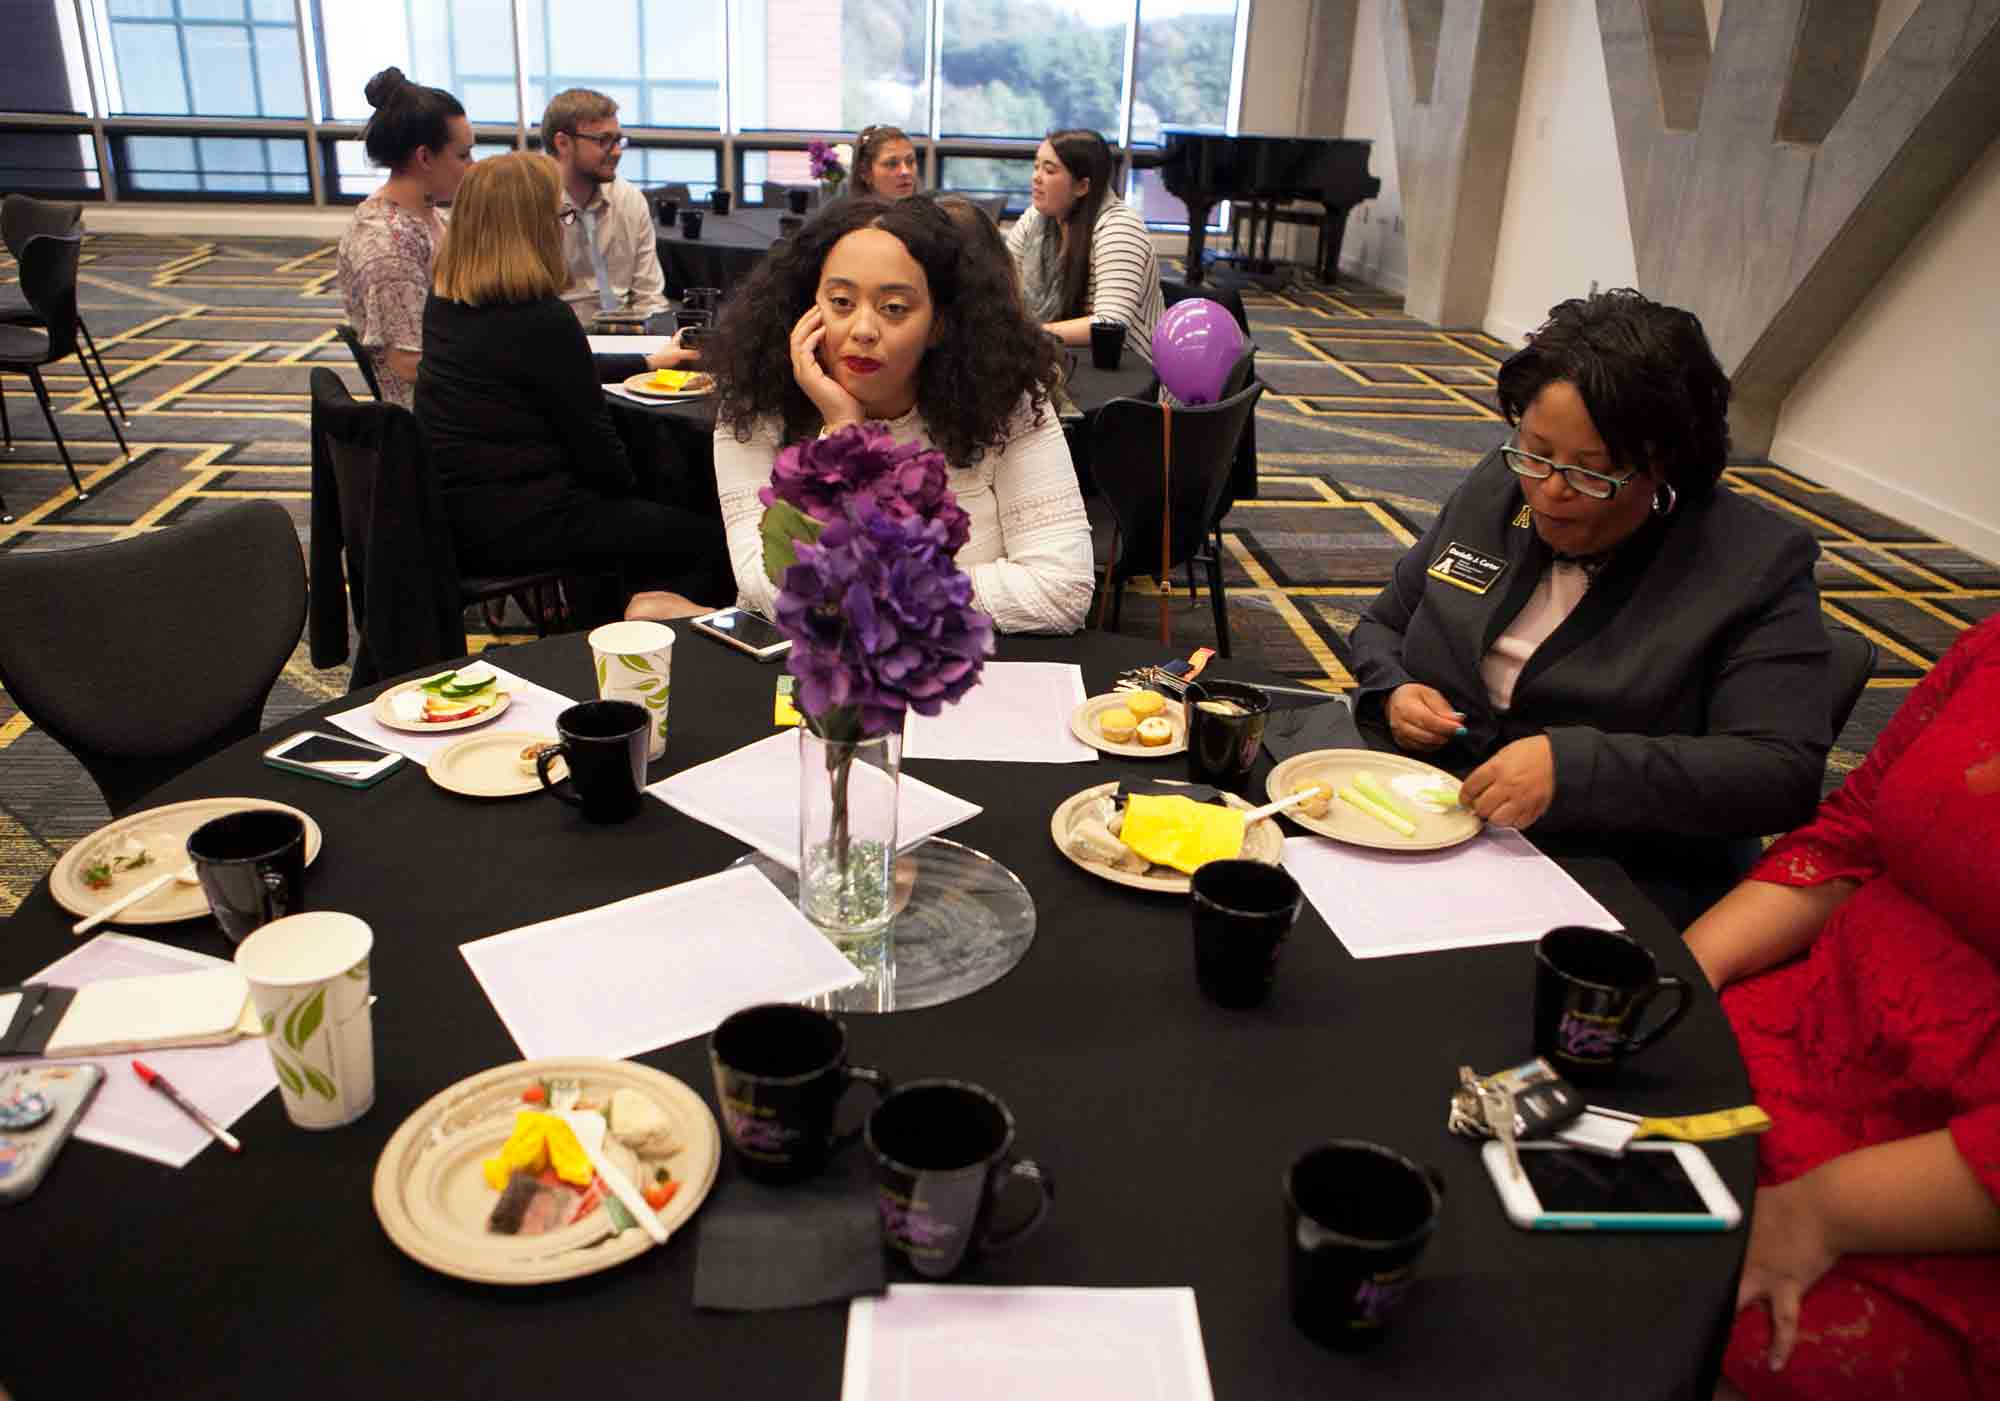 Kira Taylor (center), Danielle Carter (right) and others engage in conversation and indulge in afternoon tea treats at the 20th anniversary celebration of the Women's Center.